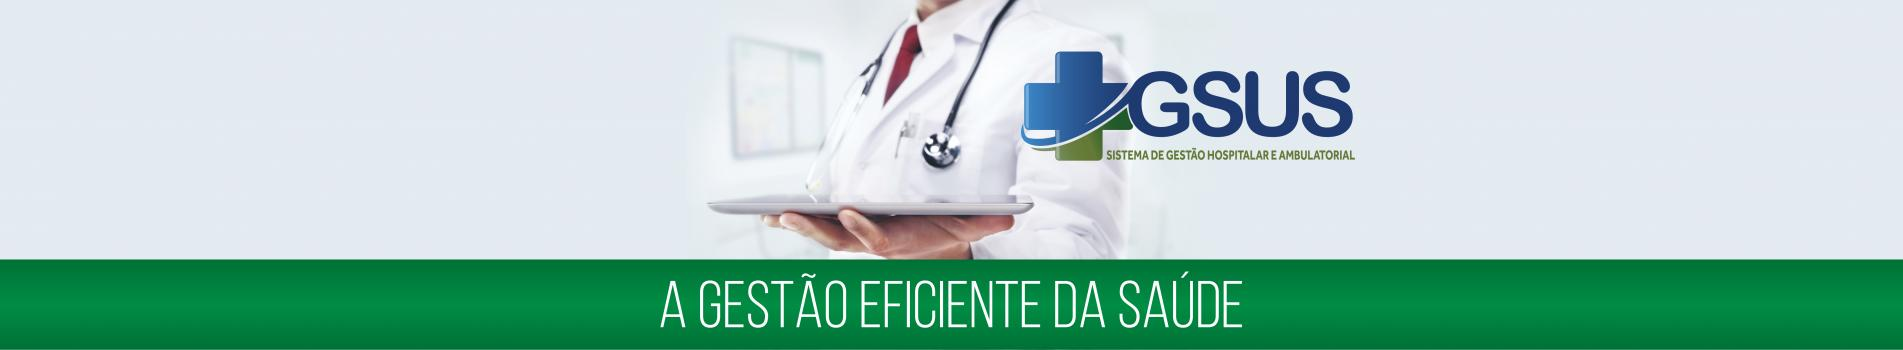 Gestão Hospitalar e Ambulatorial eficientes